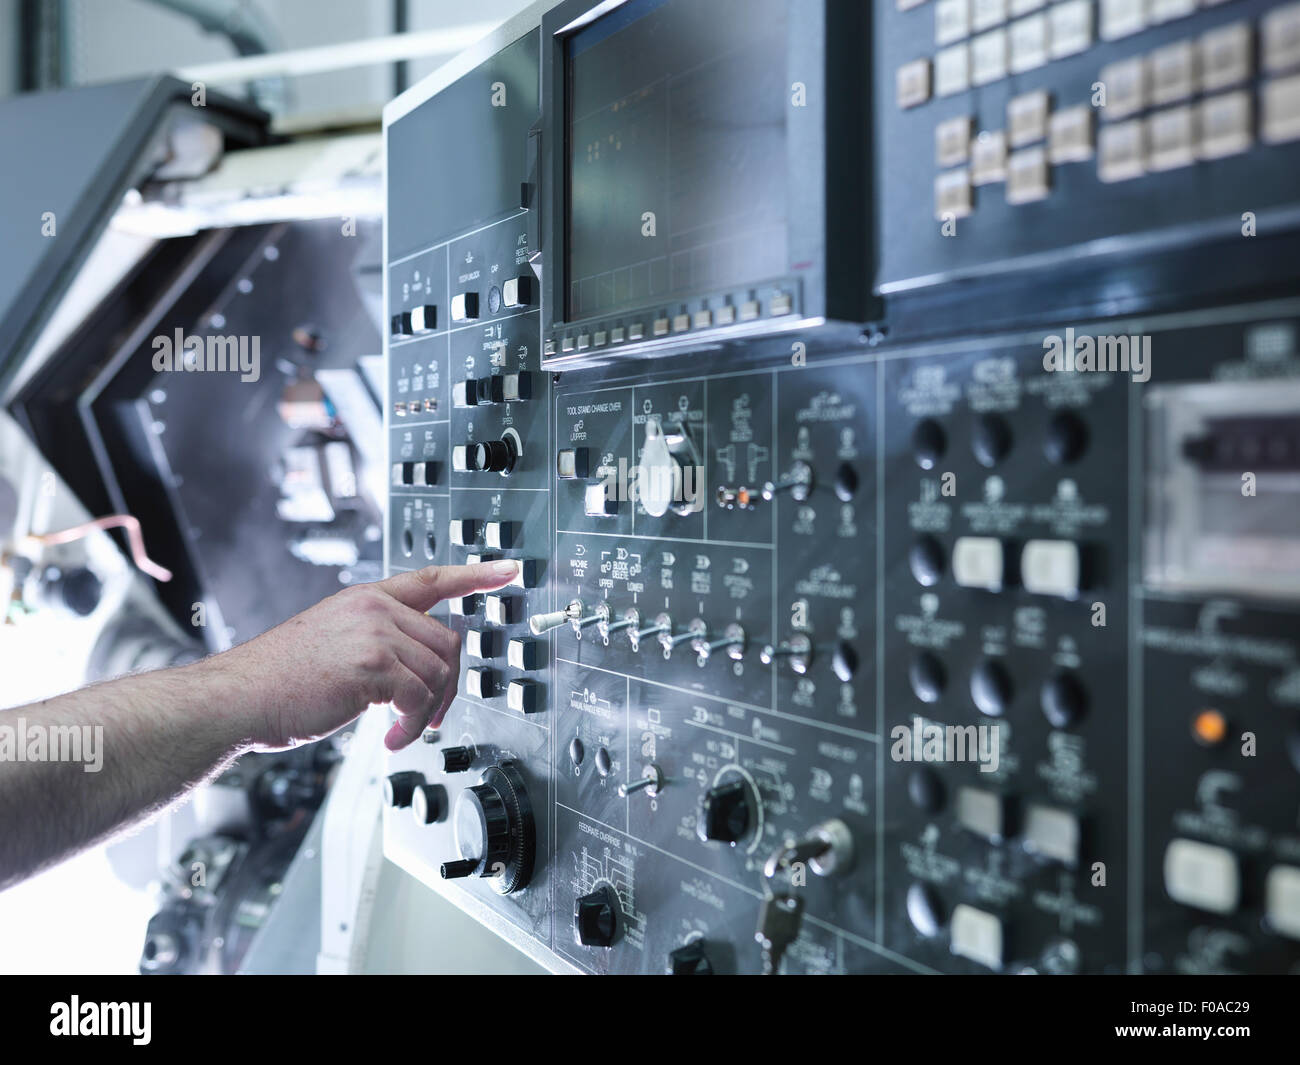 Hand of engineer operating CNC lathe control panel, close up - Stock Image